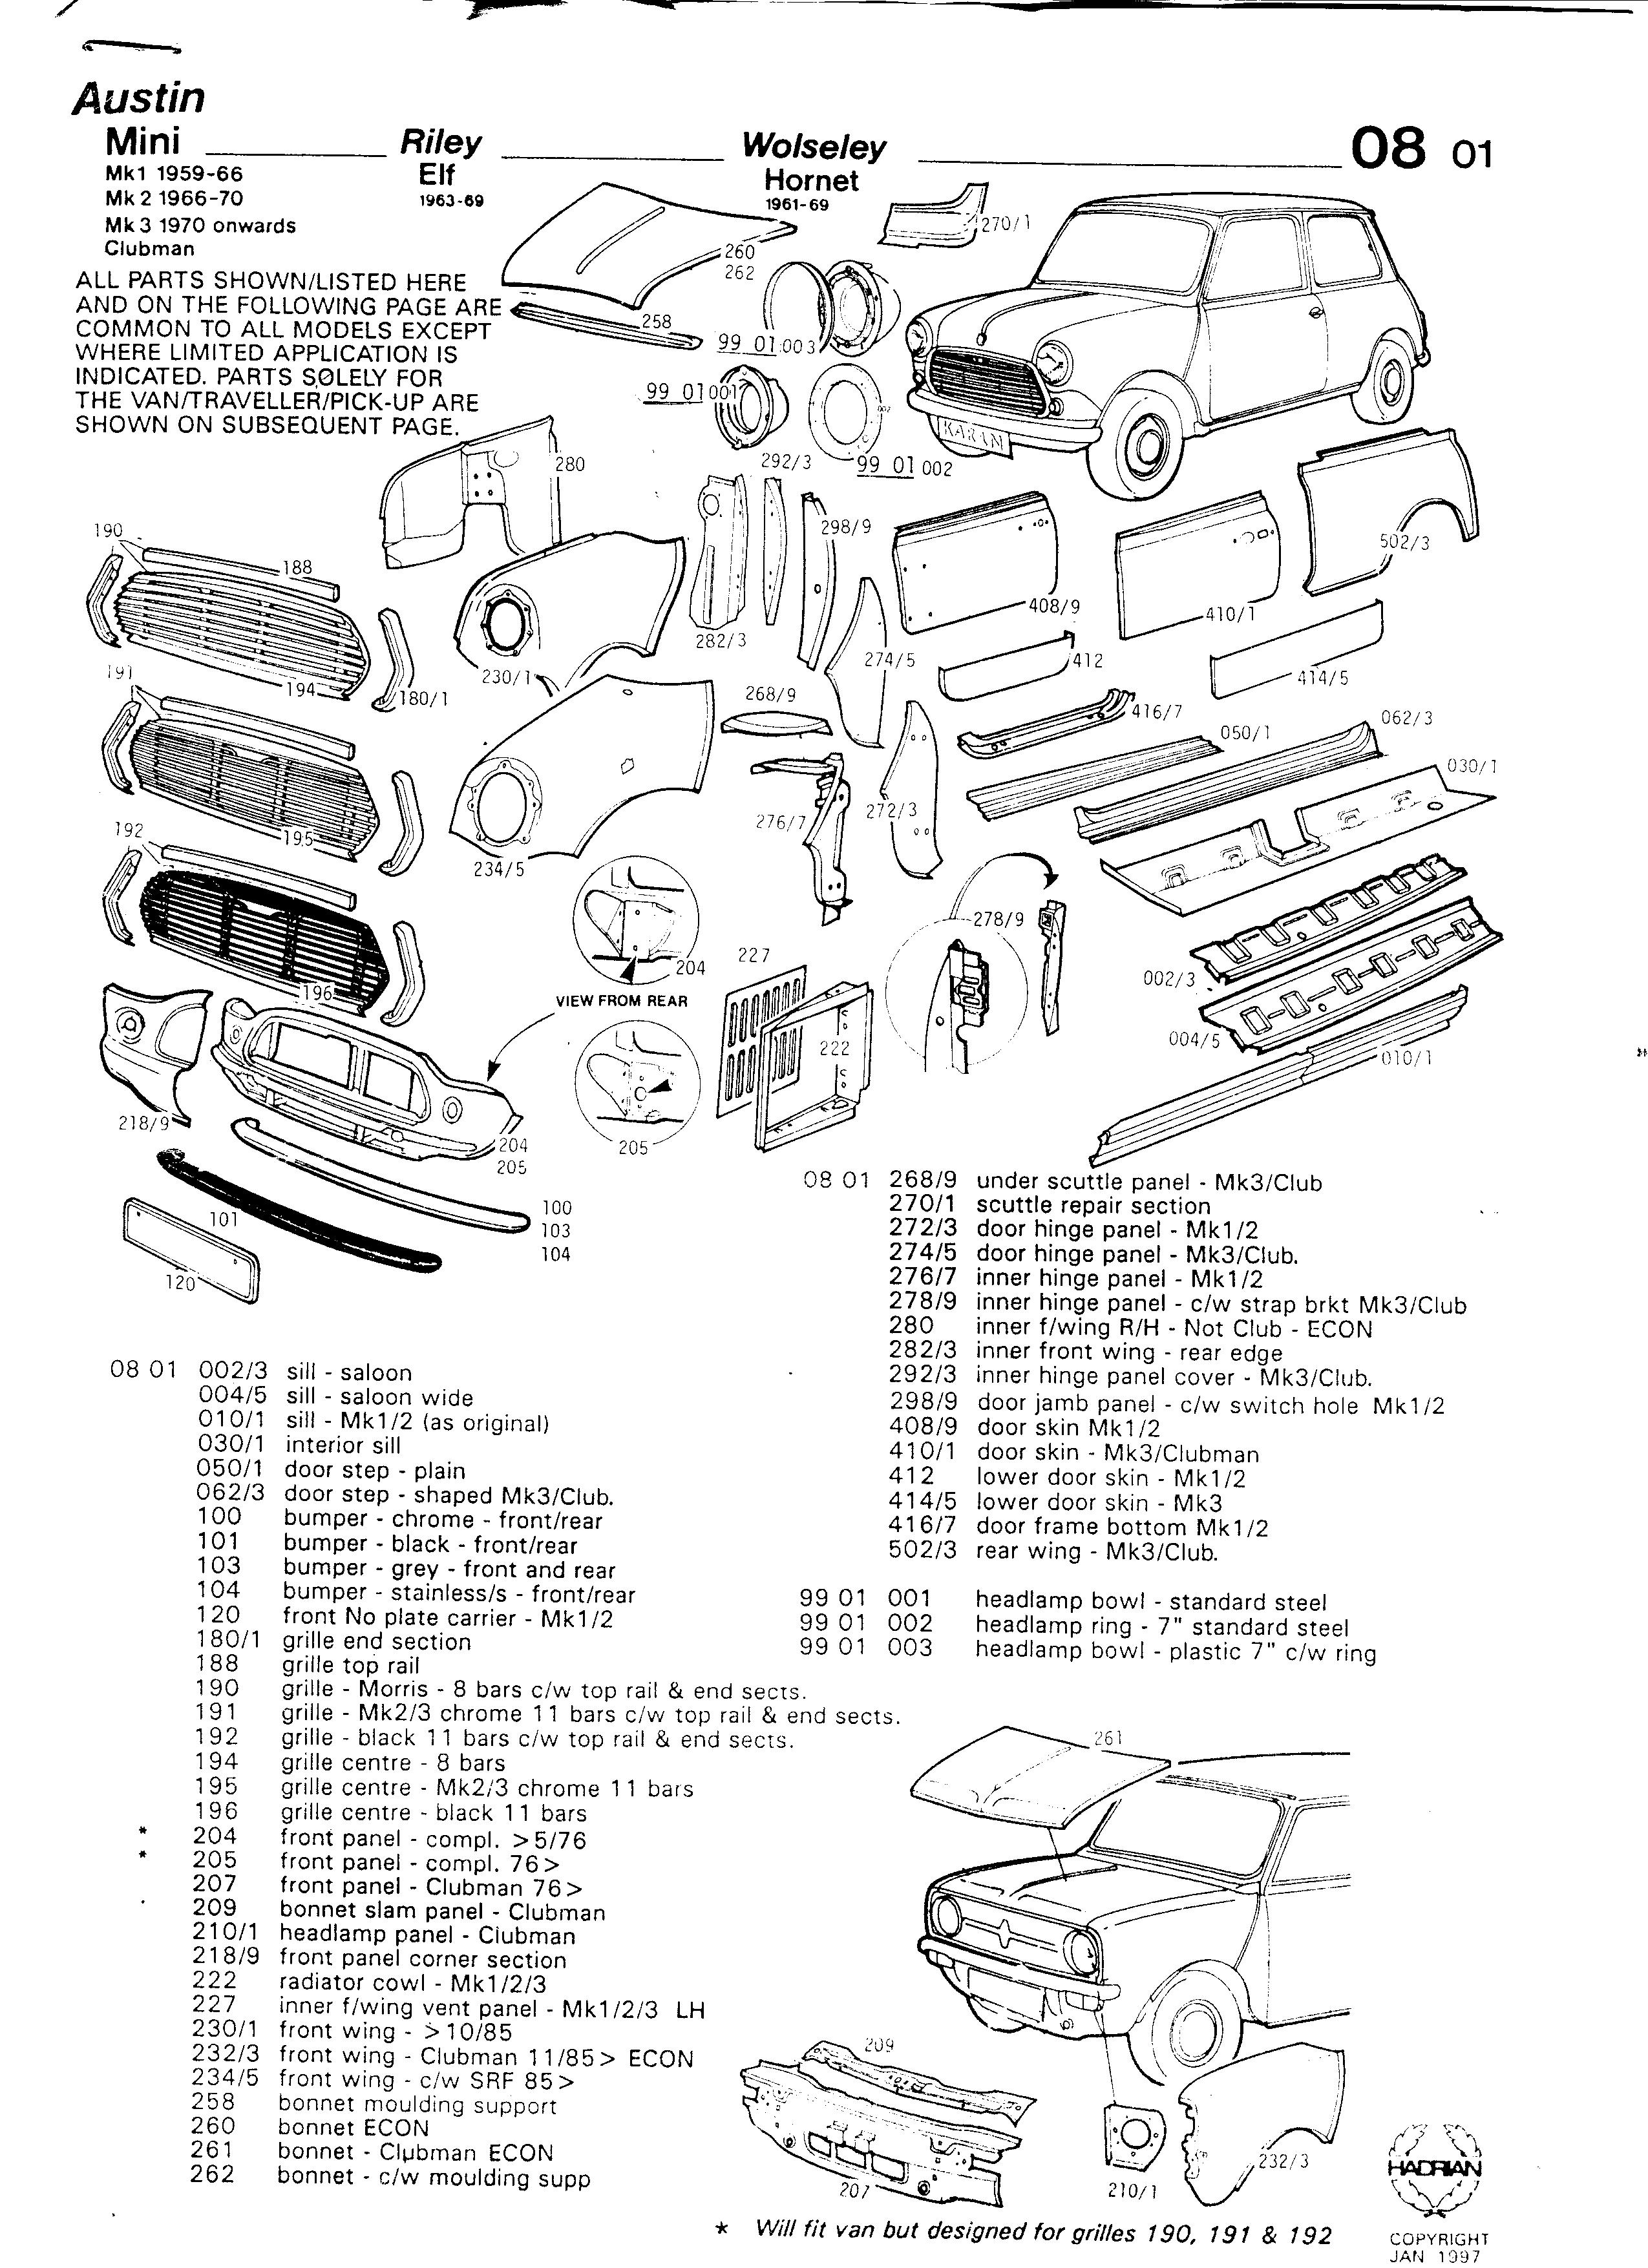 Mk1 Mini Body Assembly Diagram